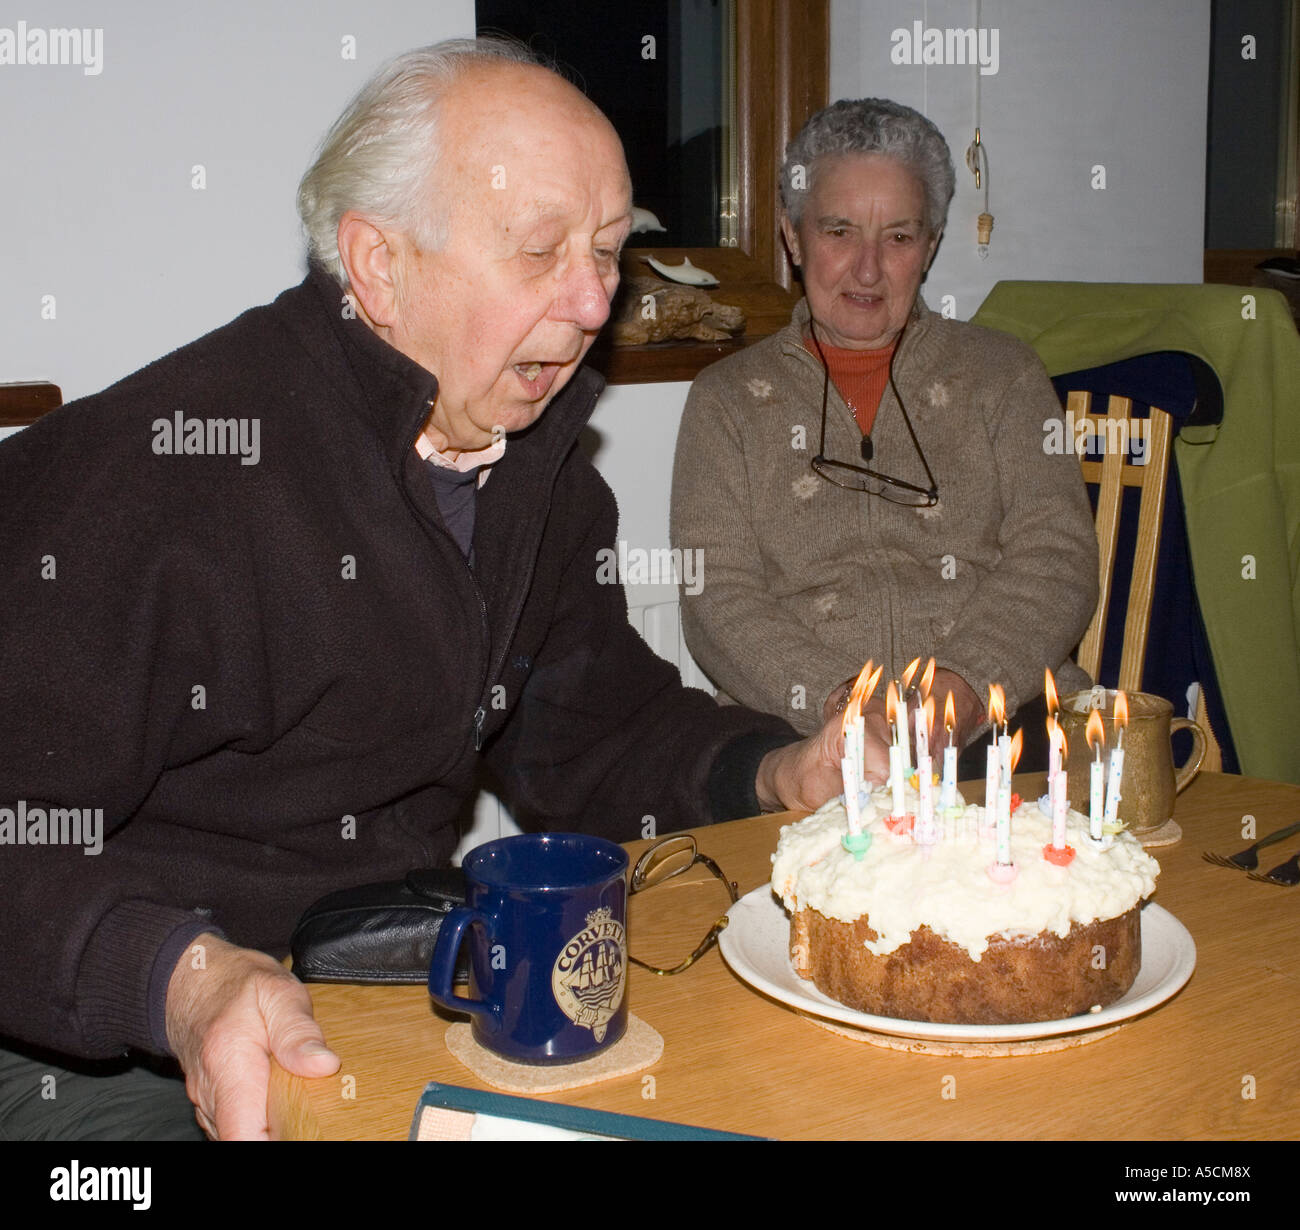 Man With Wife Blowing Out Birthday Cake Candles Wales UK